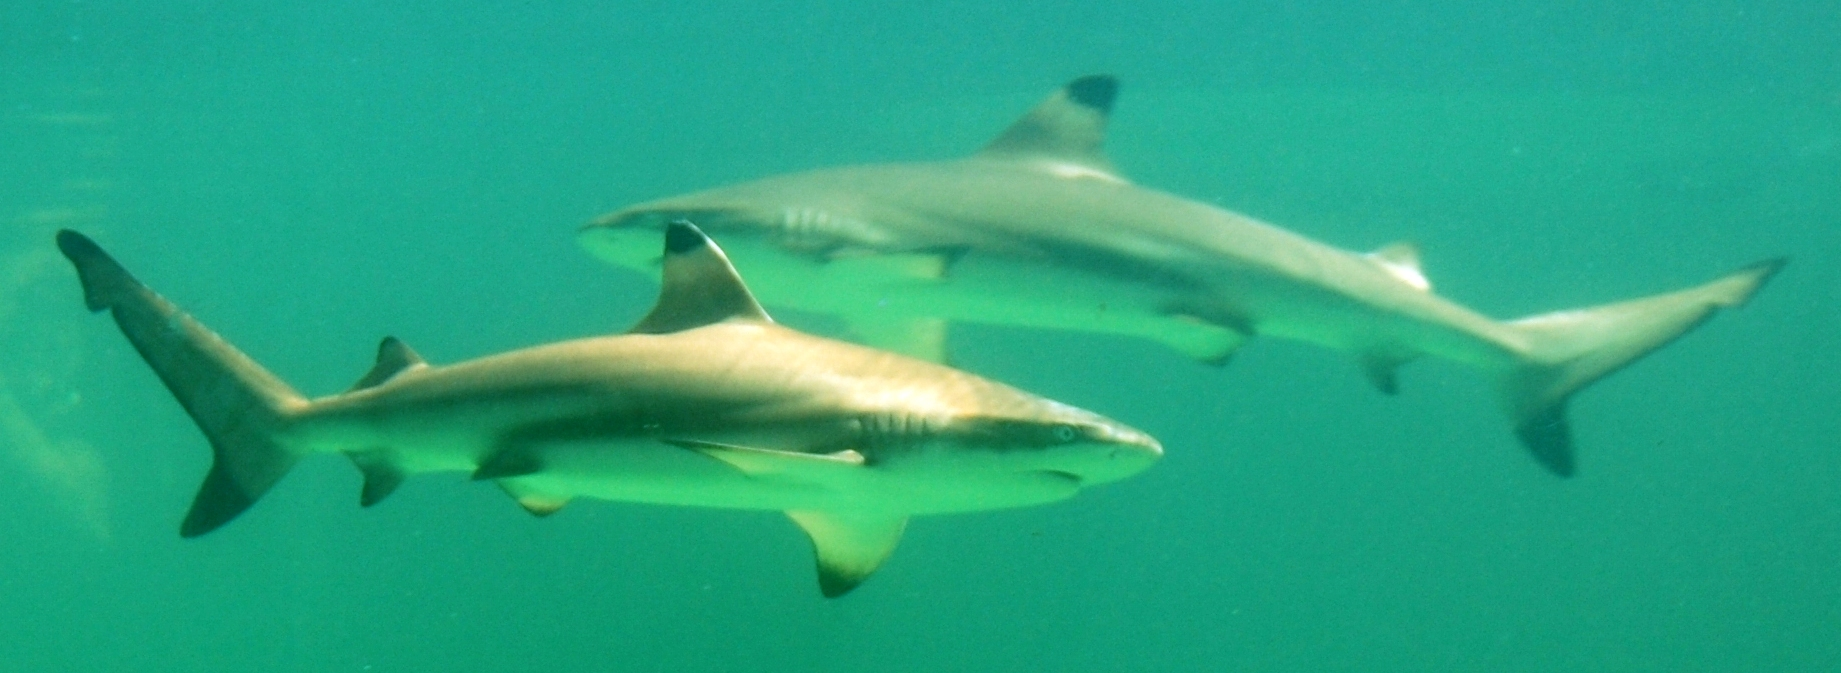 File:Blaktip sharks @the green connection.JPG - Wikimedia Commons